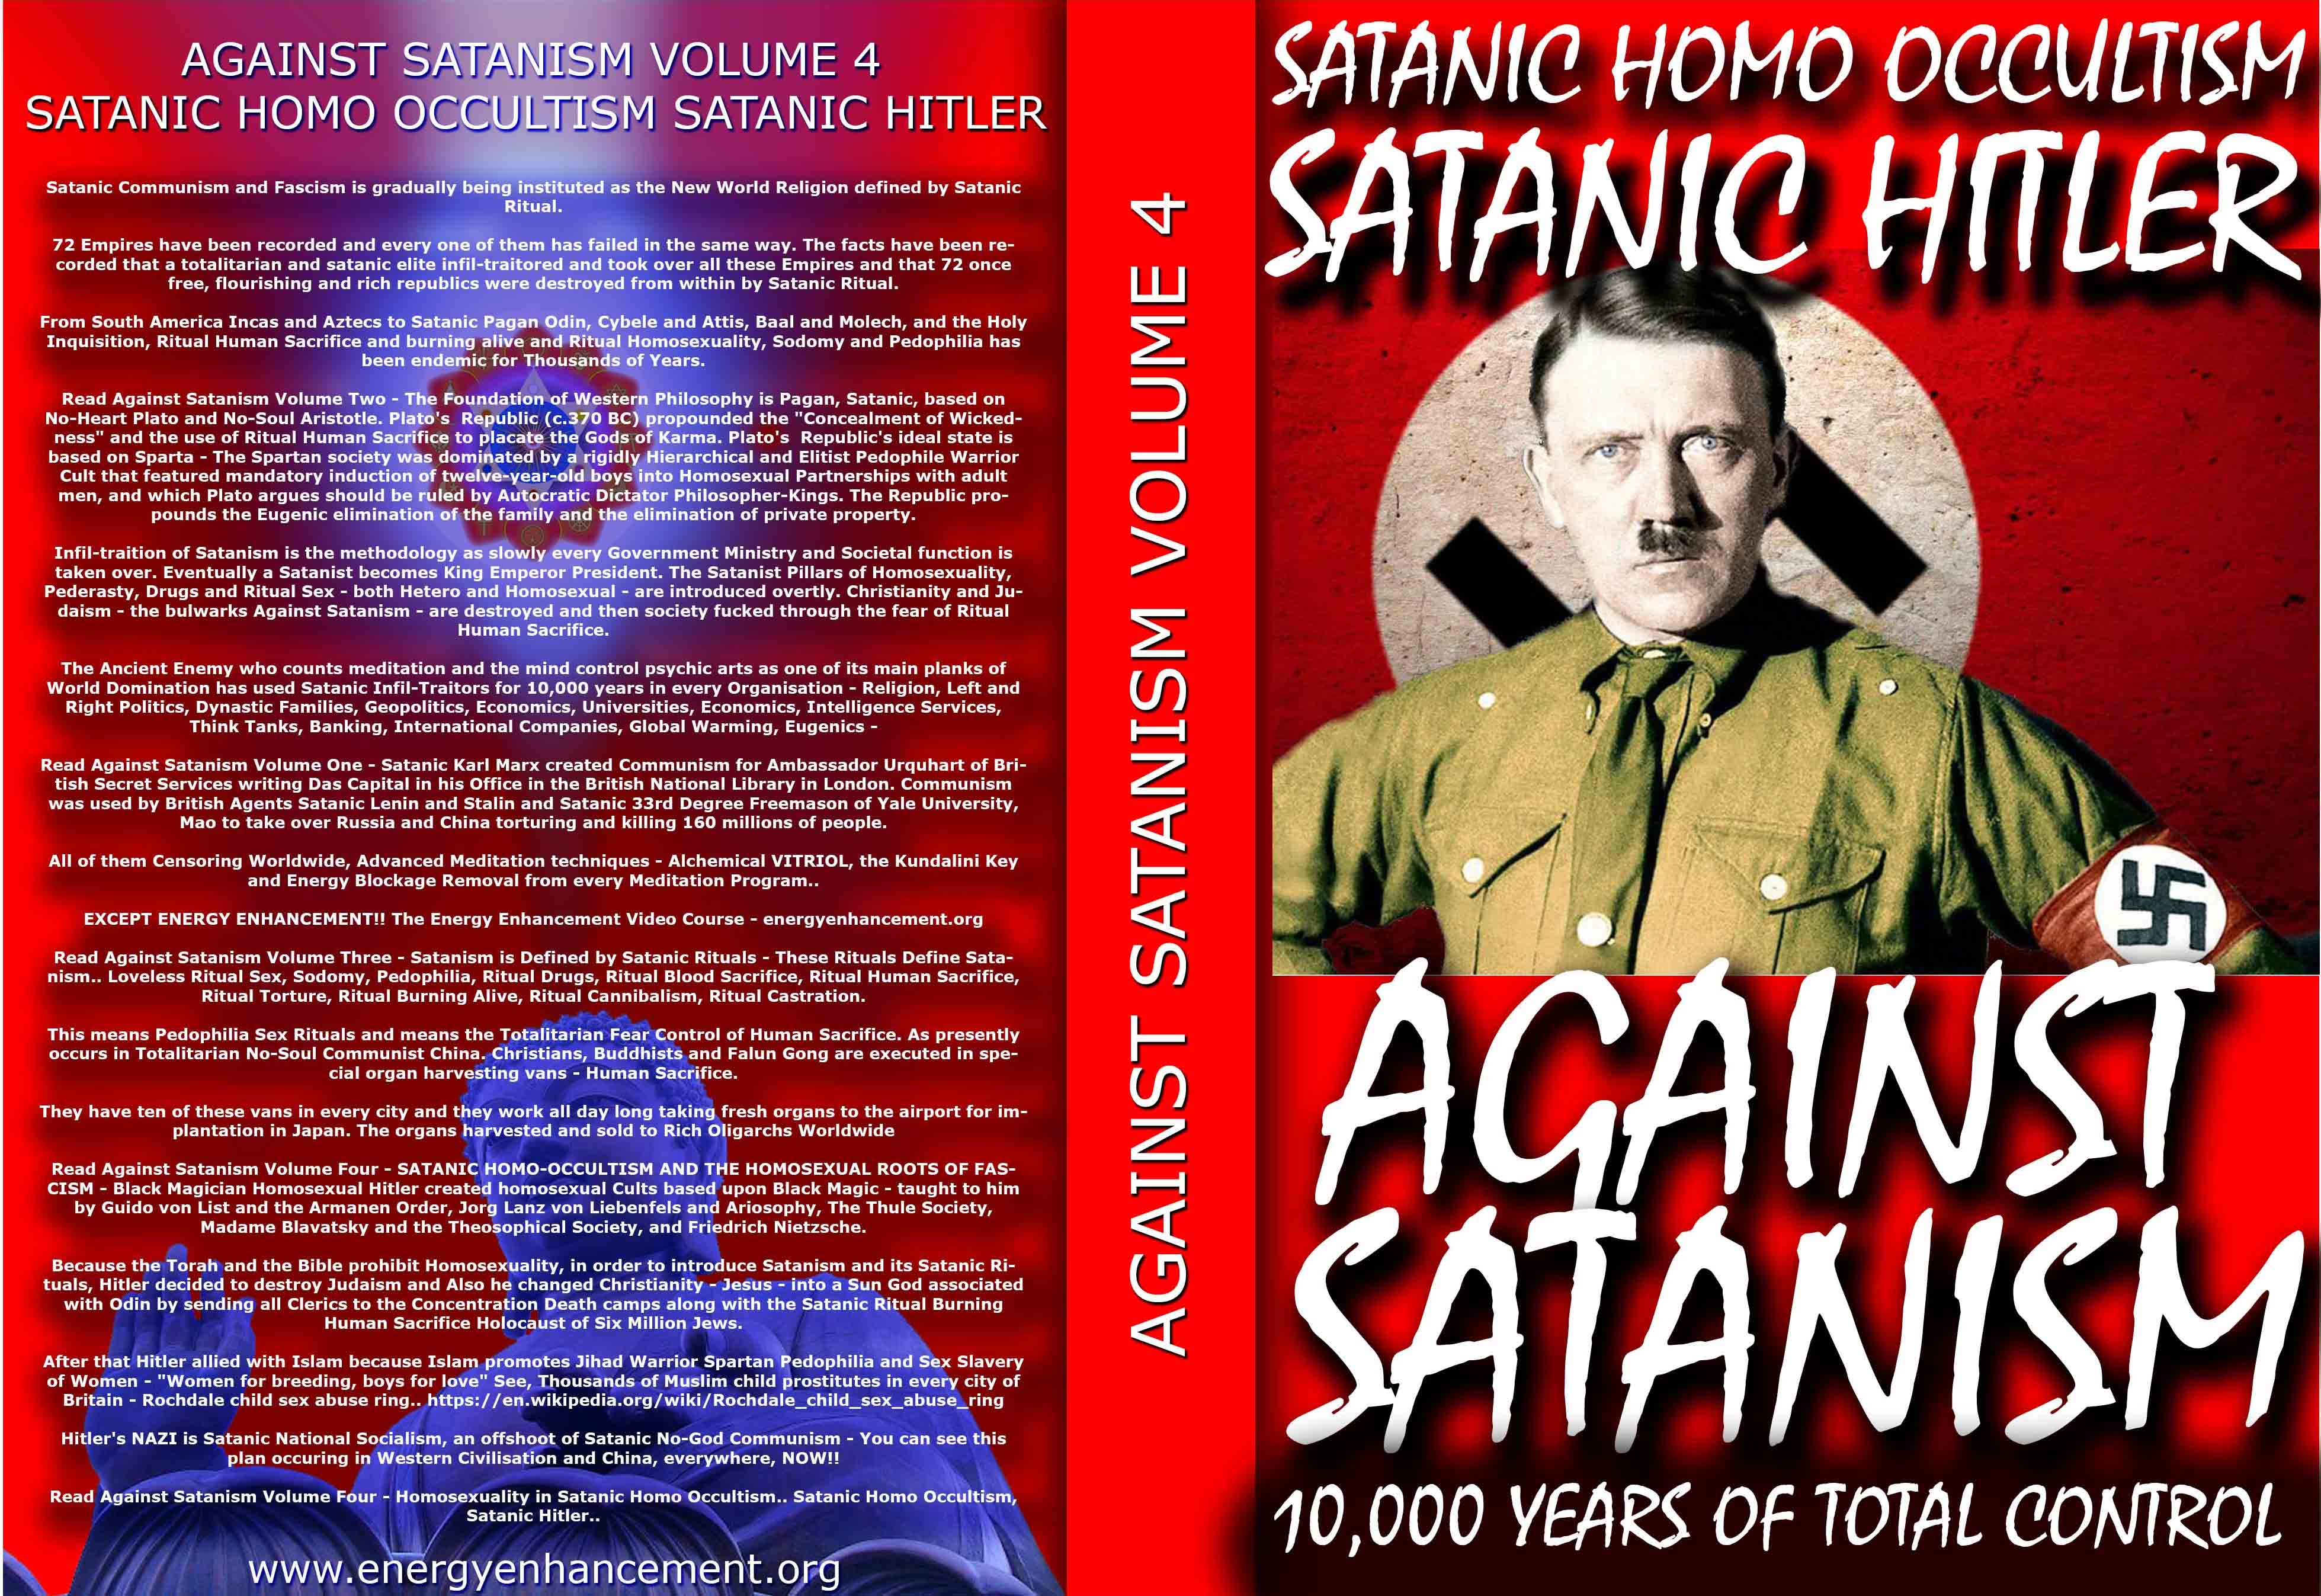 Description: Description: C:\wnew\Sacred-Energy\Against-Satanism-Volume-4\ANTI SATANIC 4 full coverr.jpg